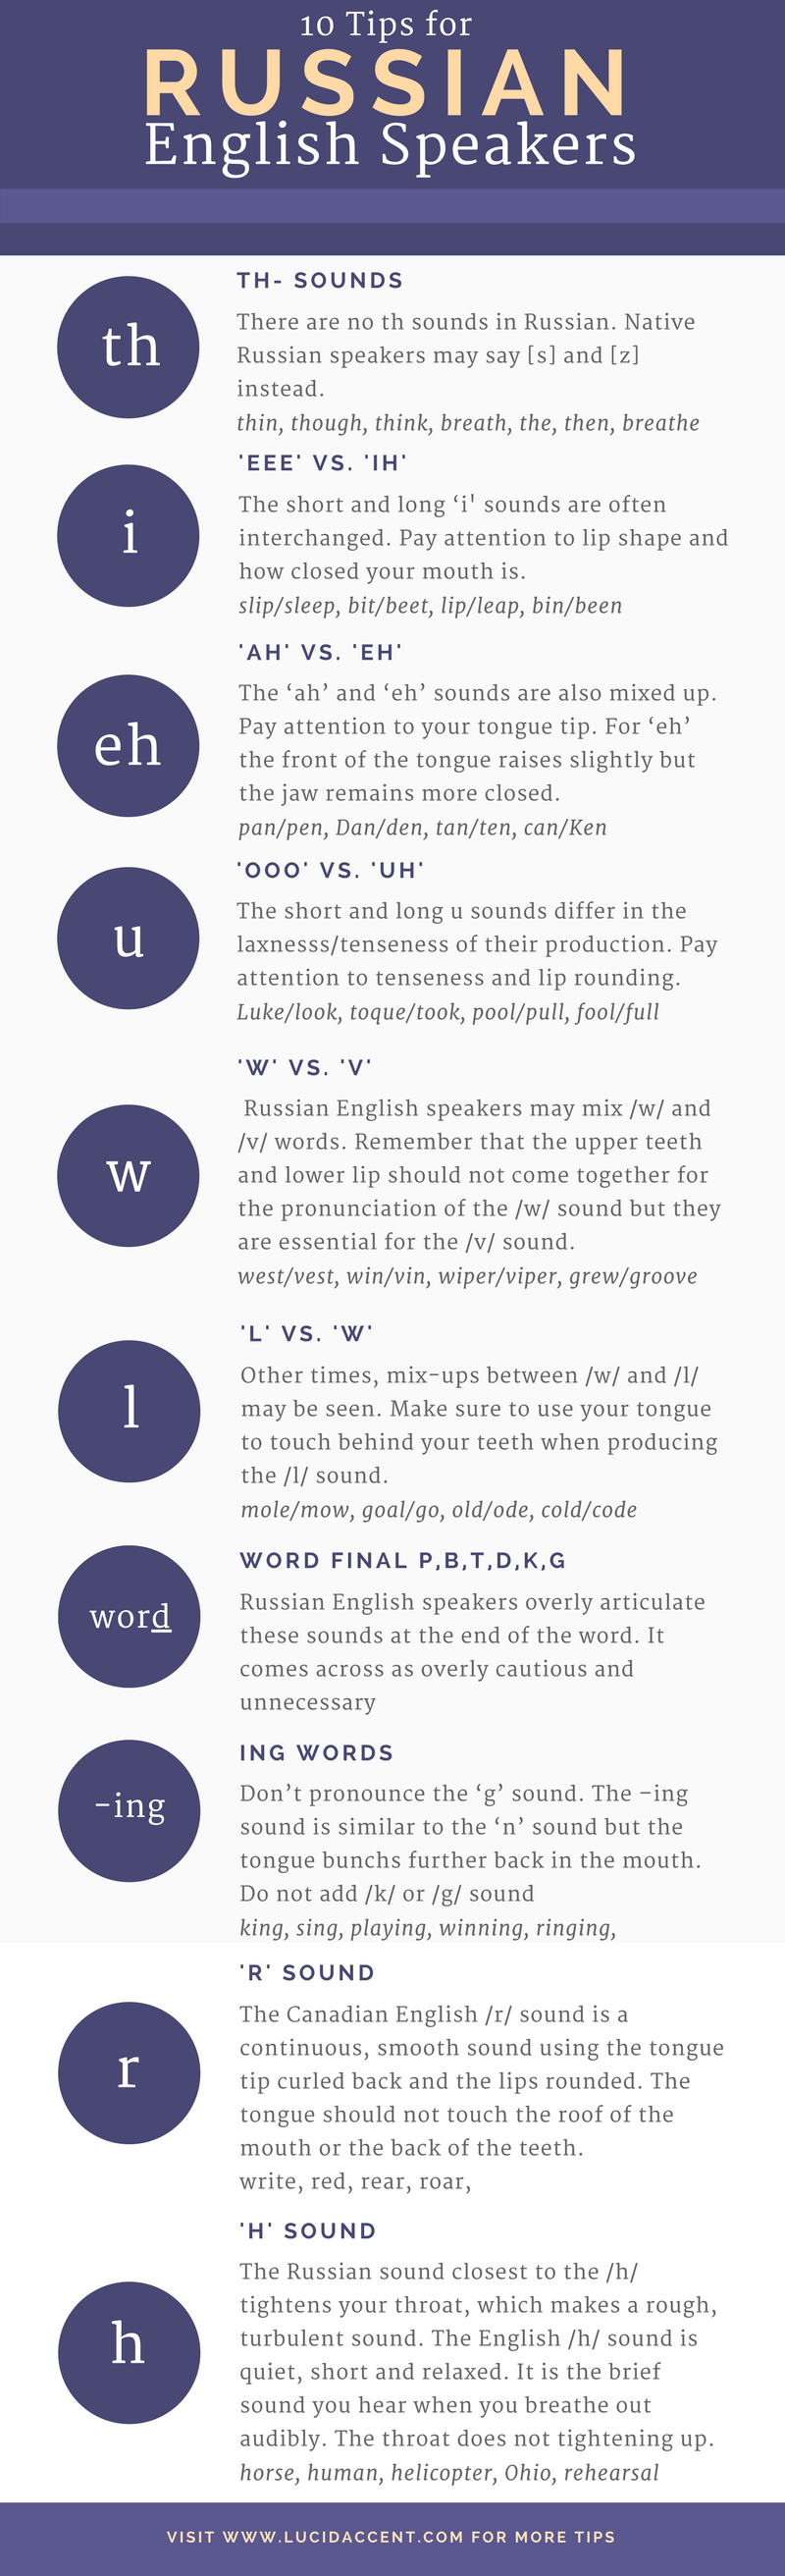 10 Tips for Russian English Speakers